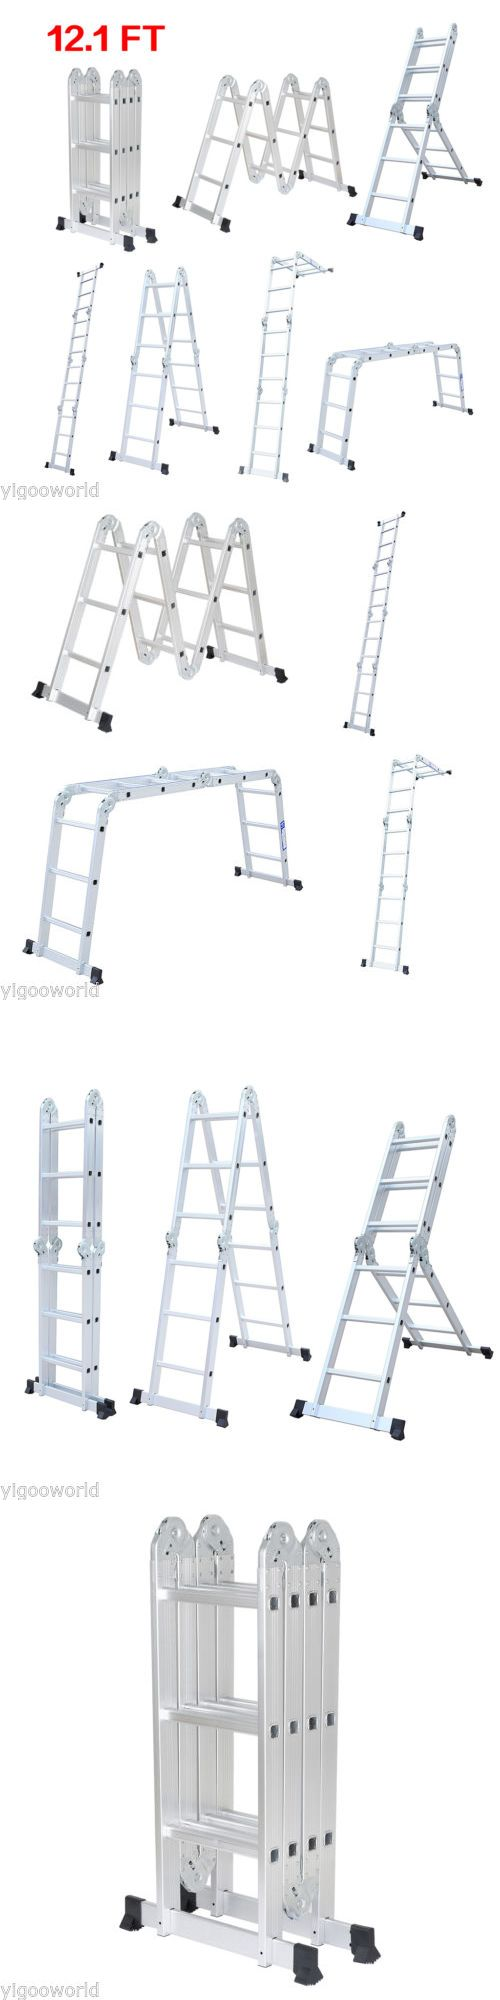 Ladders 112567: Folding 12.1Ft Aluminum Multi Purpose Ladder Step Platform Scaffold Extendable -> BUY IT NOW ONLY: $50.04 on eBay!